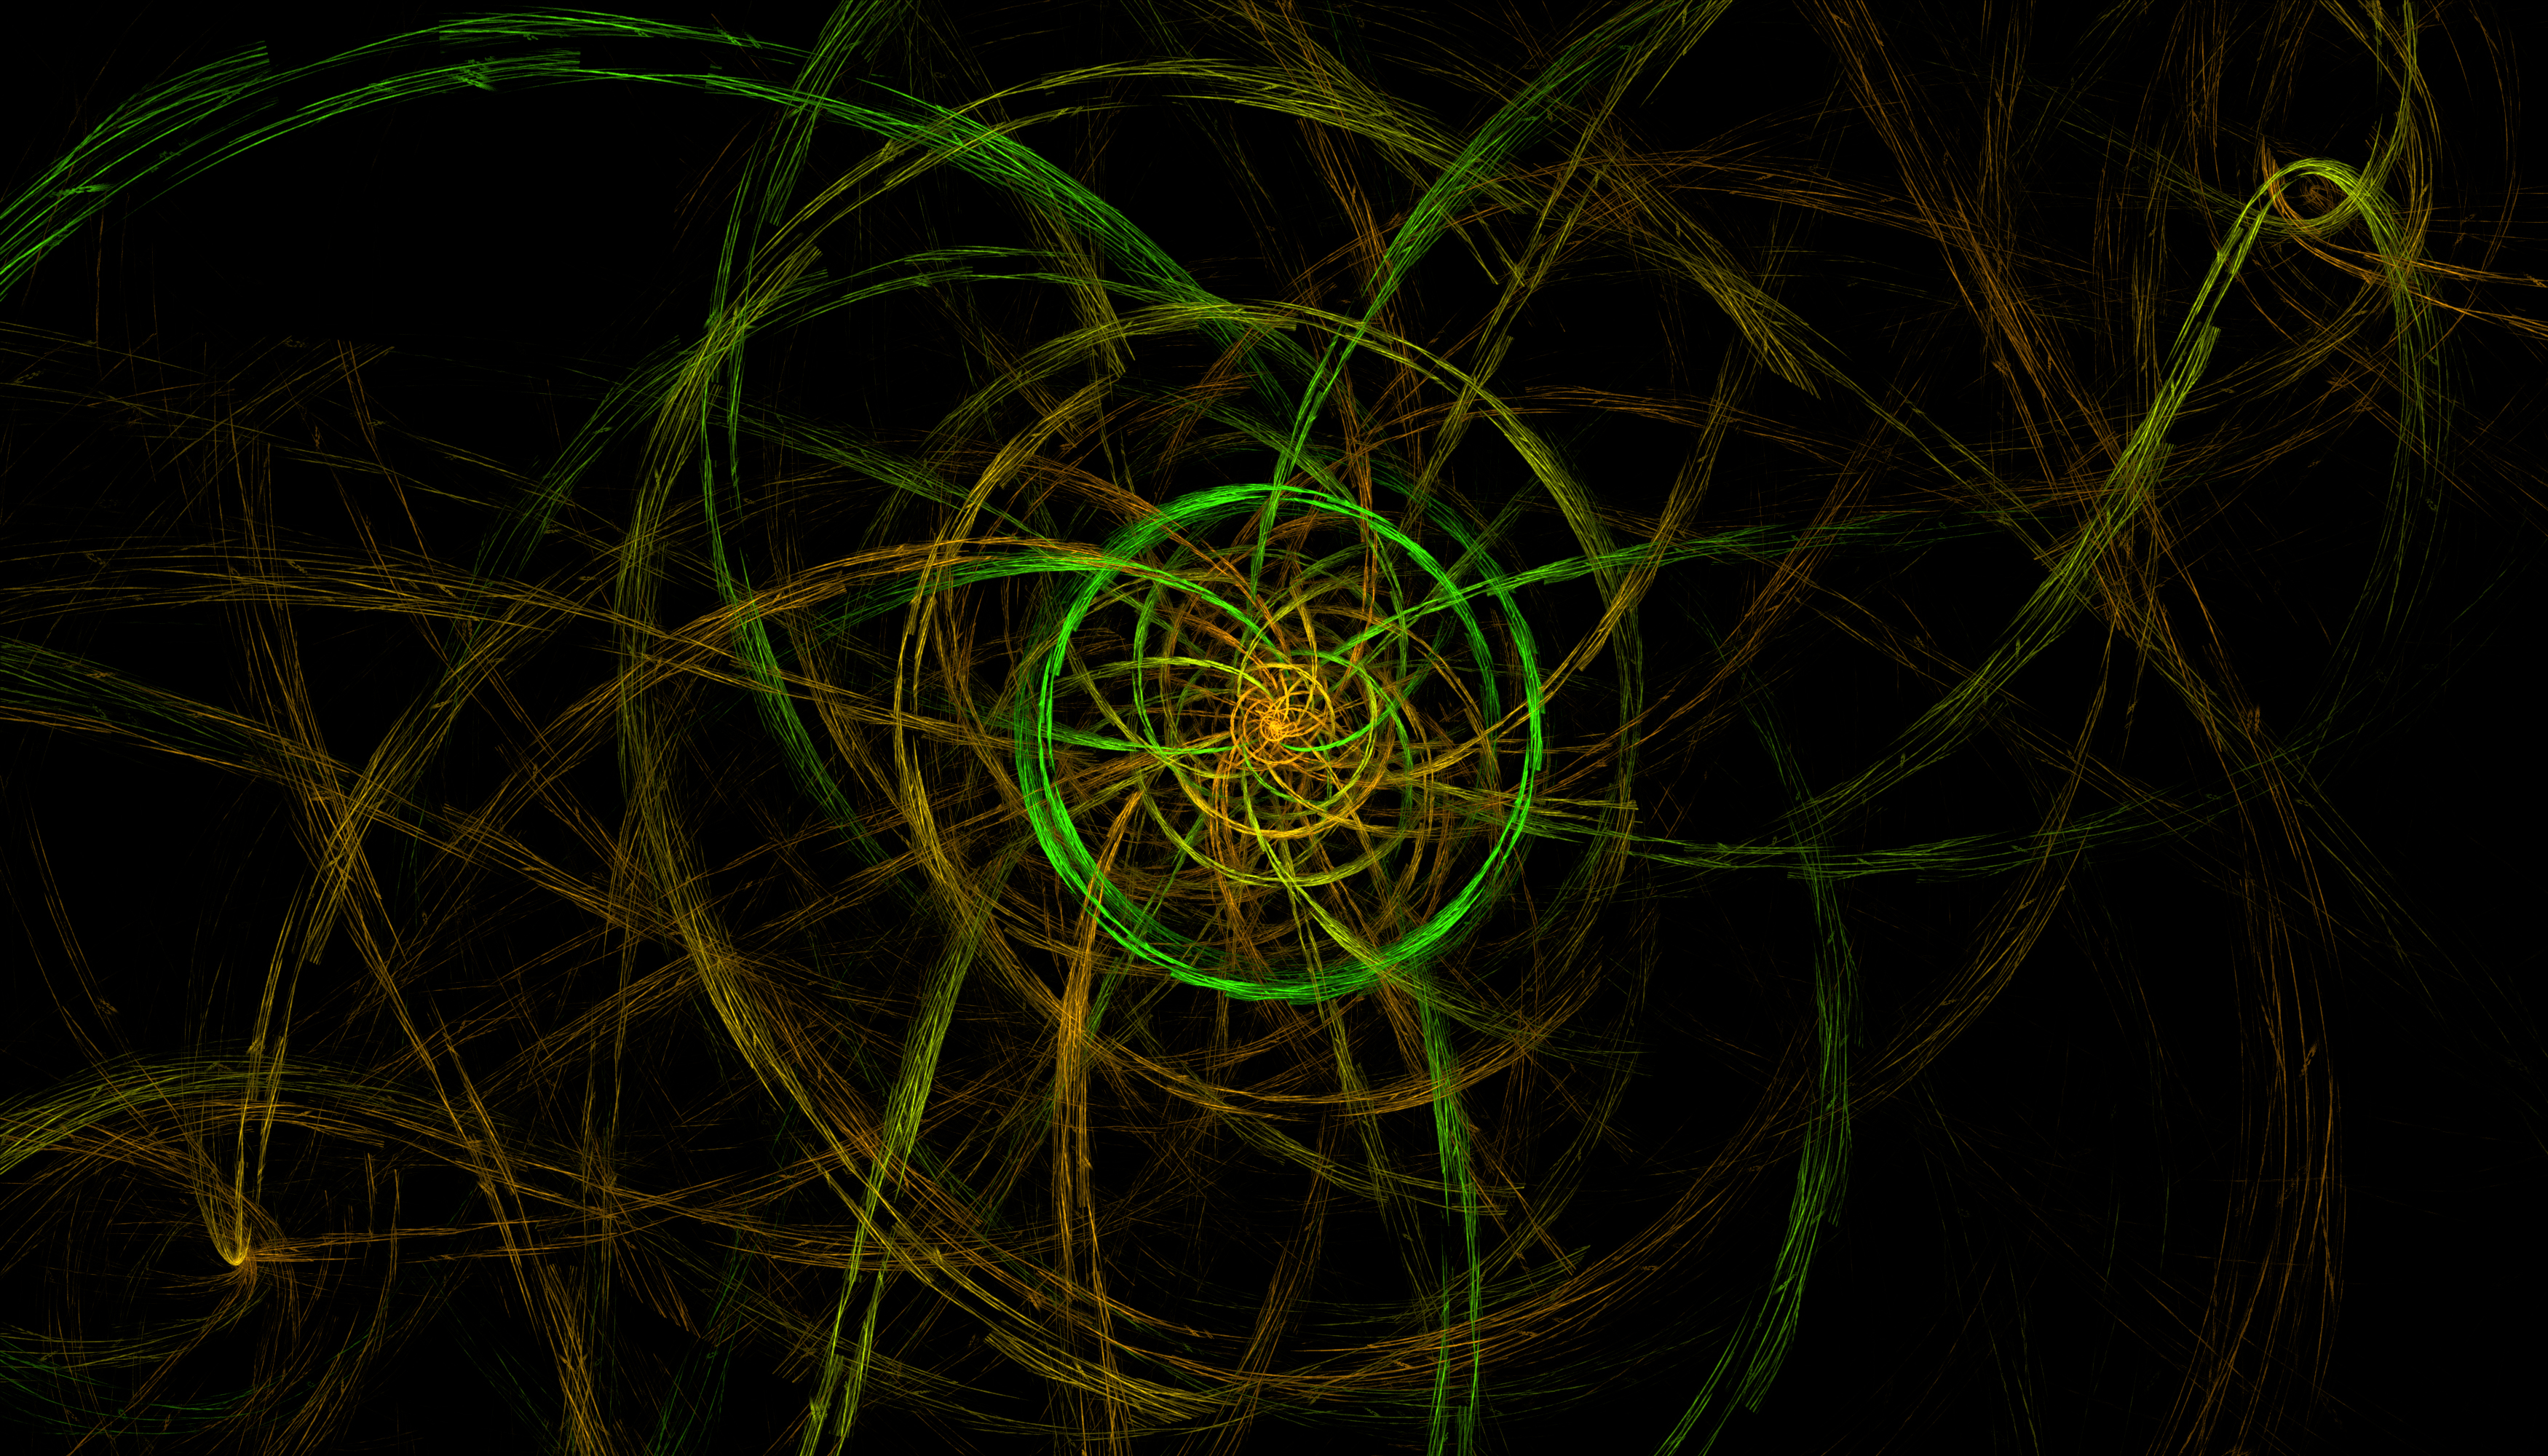 143087 Screensavers and Wallpapers Swirling for phone. Download Abstract, Fractal, Confused, Intricate, Swirling, Involute pictures for free